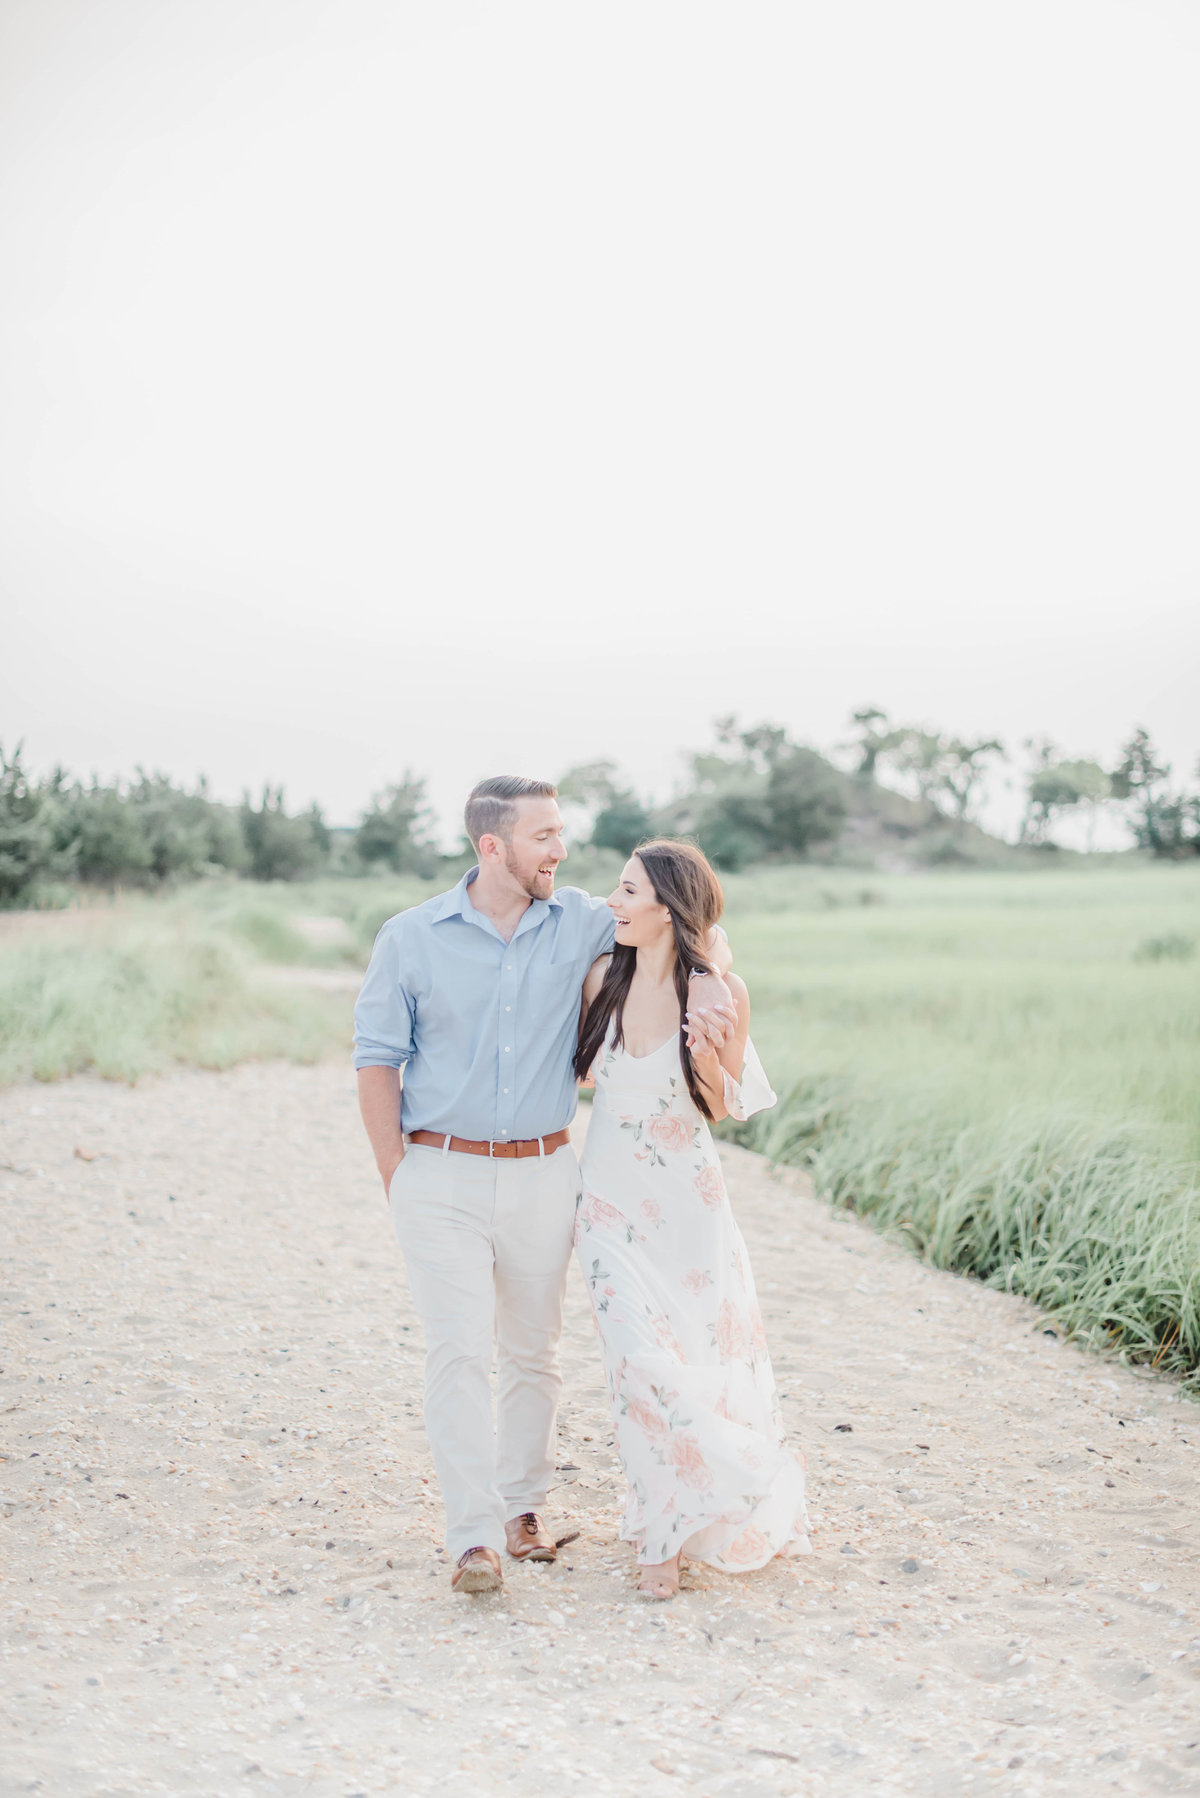 MollySuePhotography Engagements32 copy